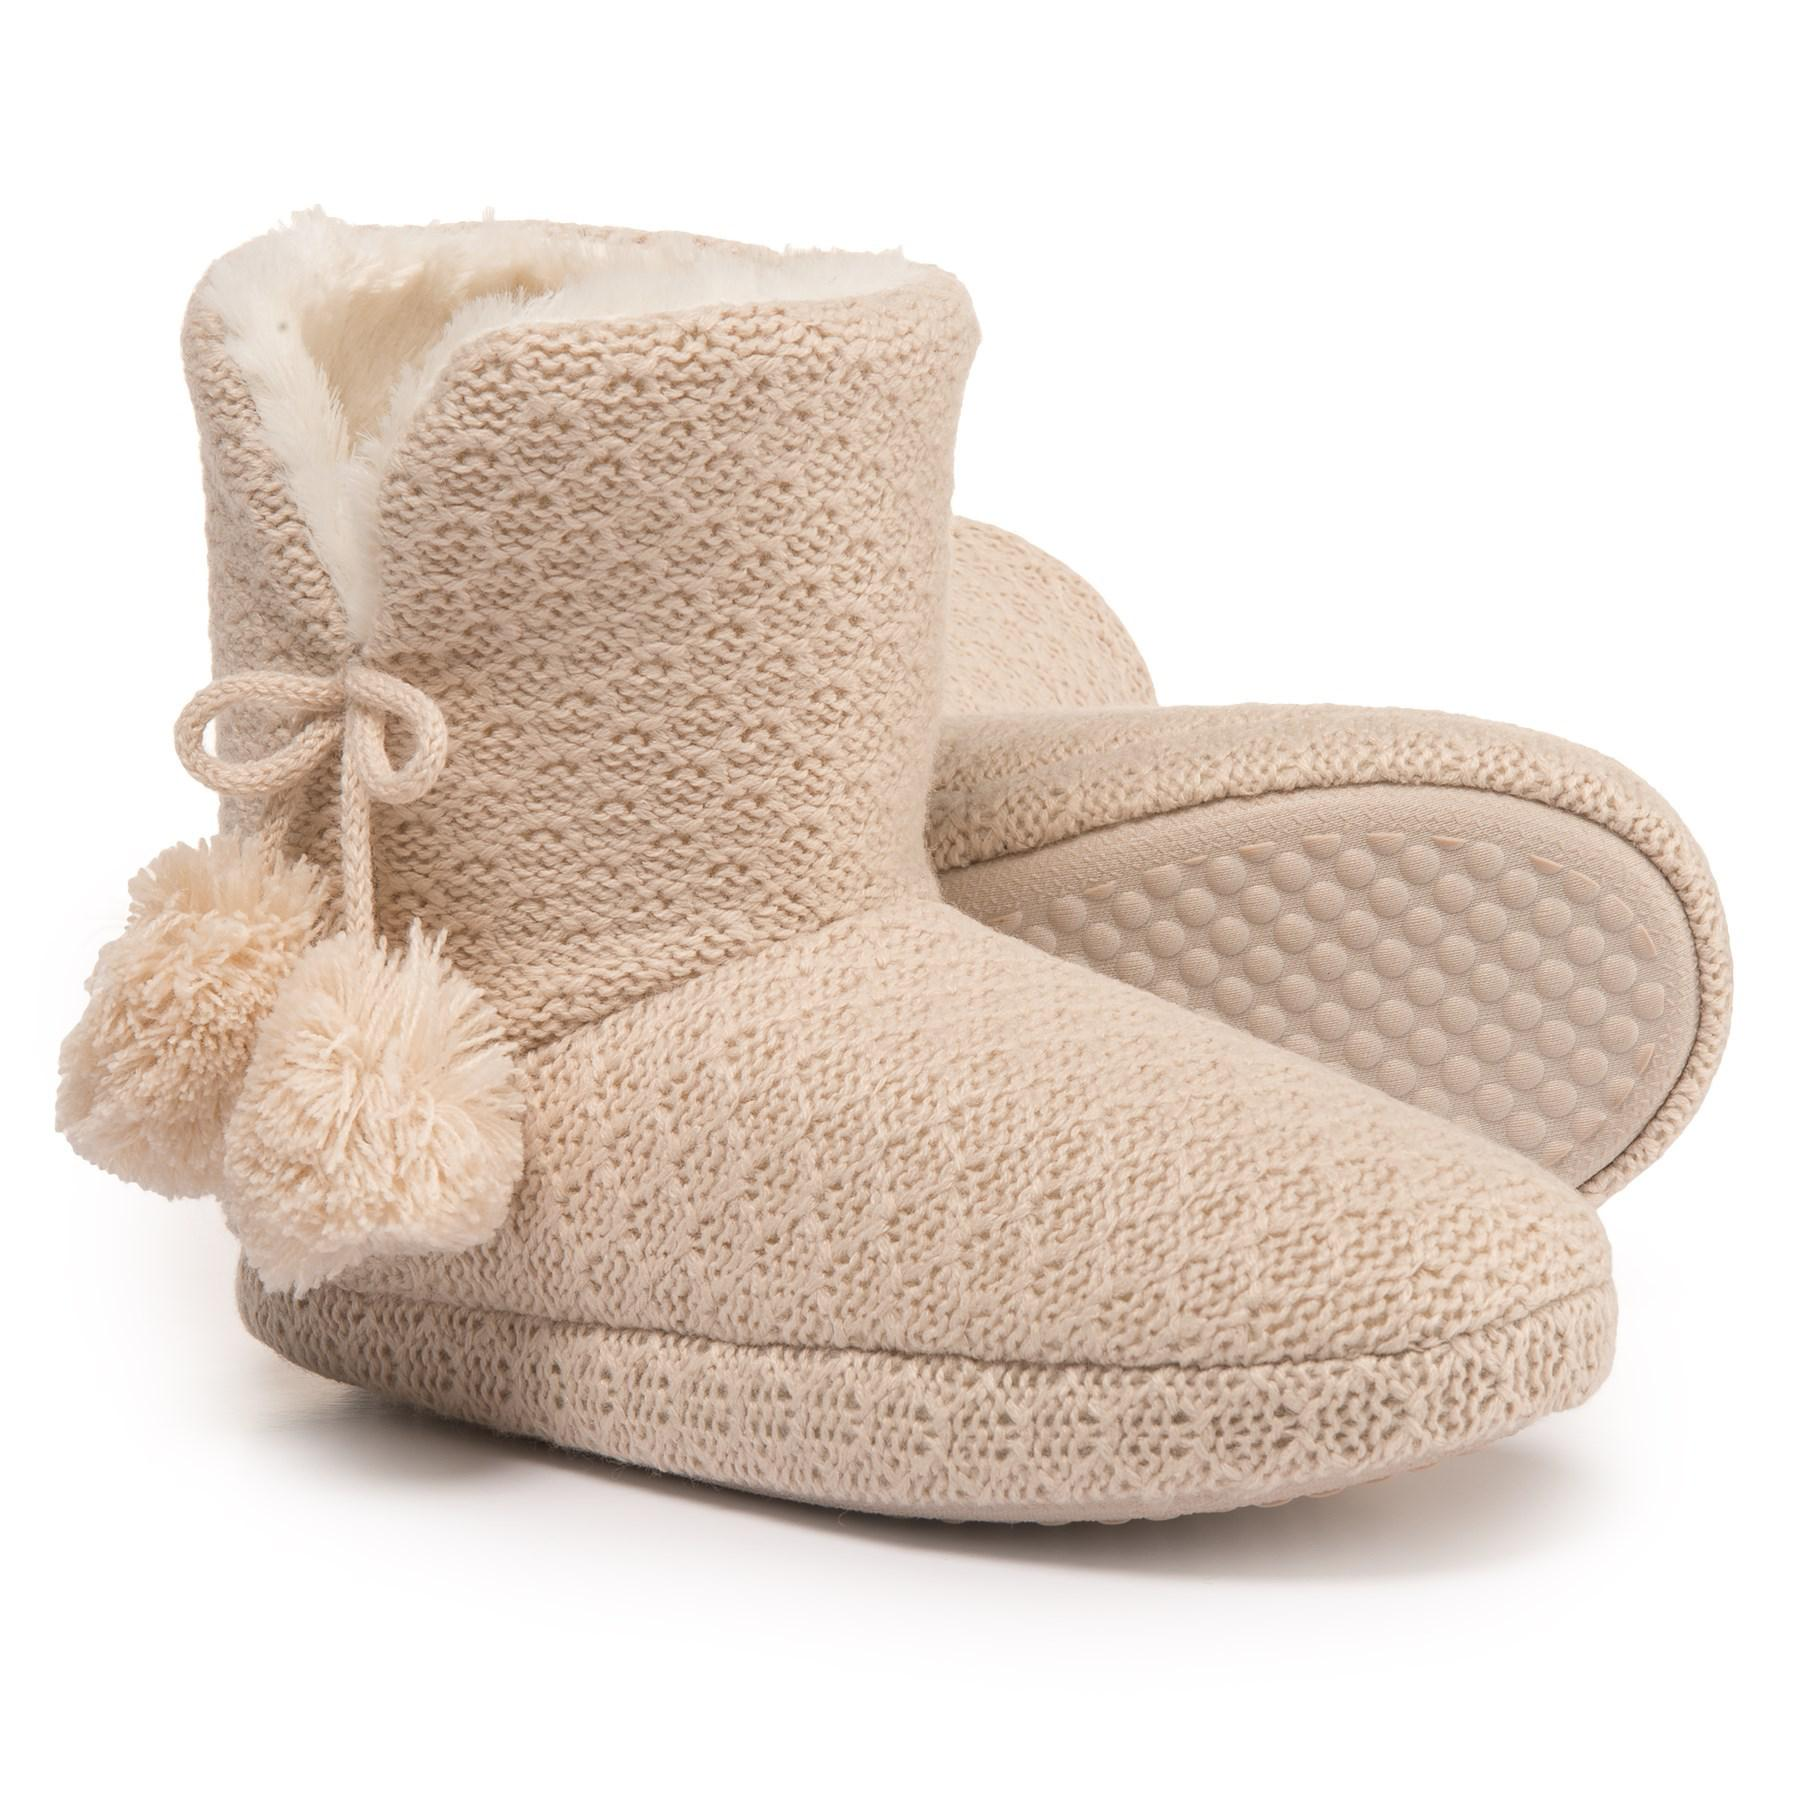 f8338af7782 Lyst - Daniel Green Ariah Slipper Booties (for Women) in Natural